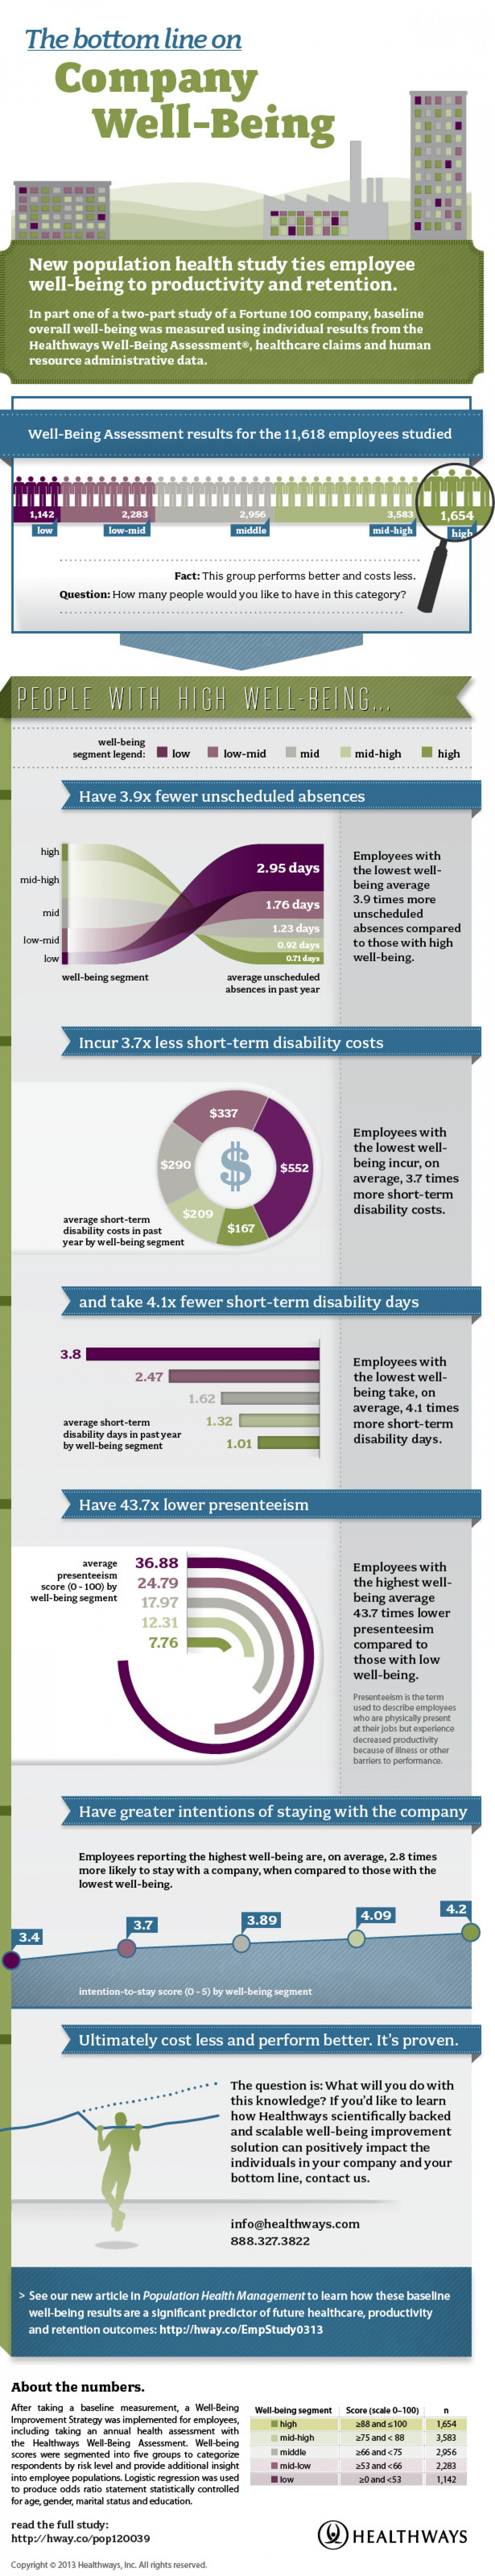 Company Well-Being Infographic